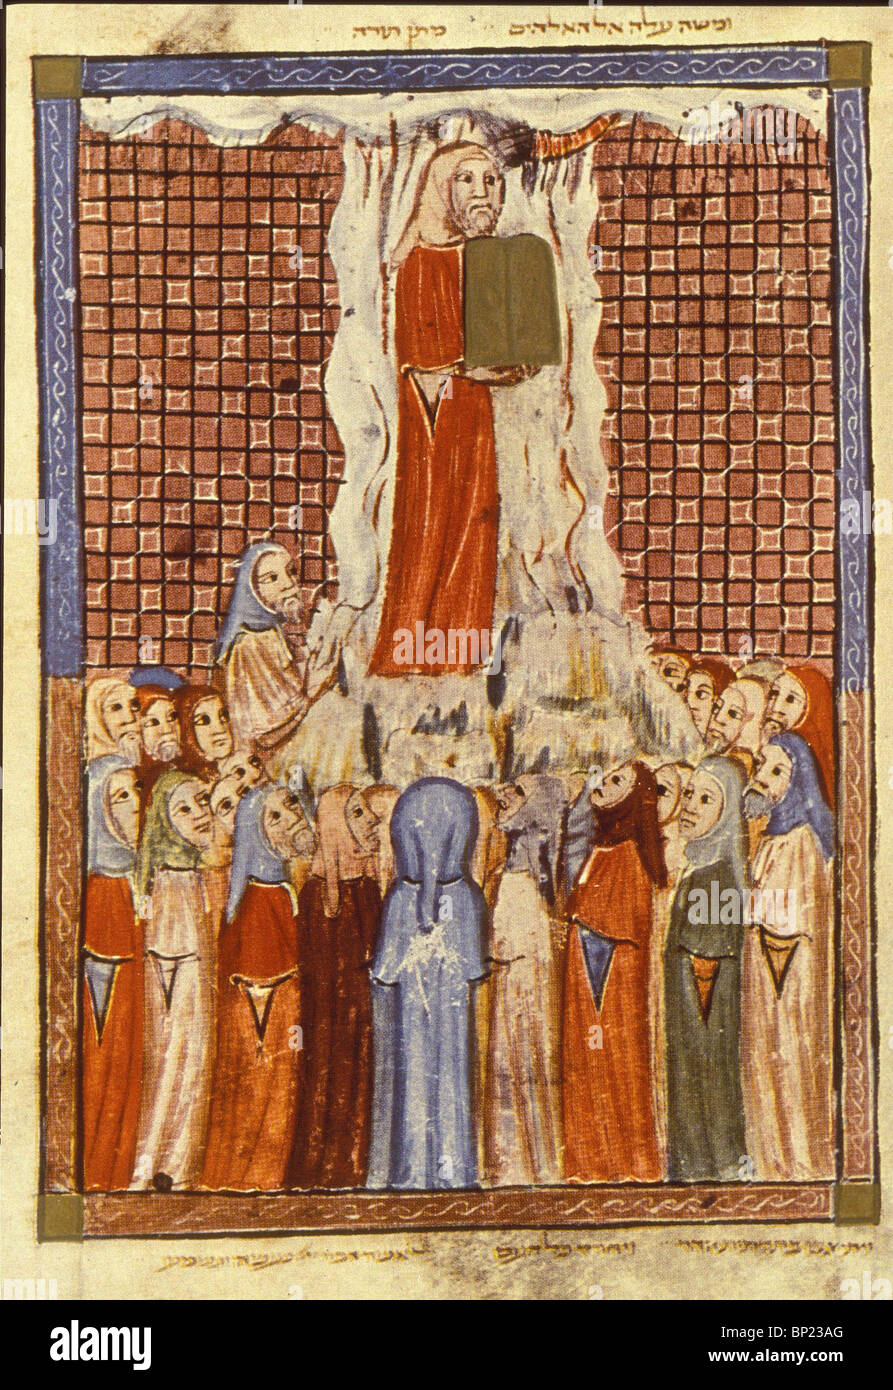 157. MOSES RECEIVING THE TEN COMMANDMENTS ON MT. SINAI. ILLUSTRATION FROM THE SARAJEVO HAGADA, A 14TH C. HEBREW - Stock Image